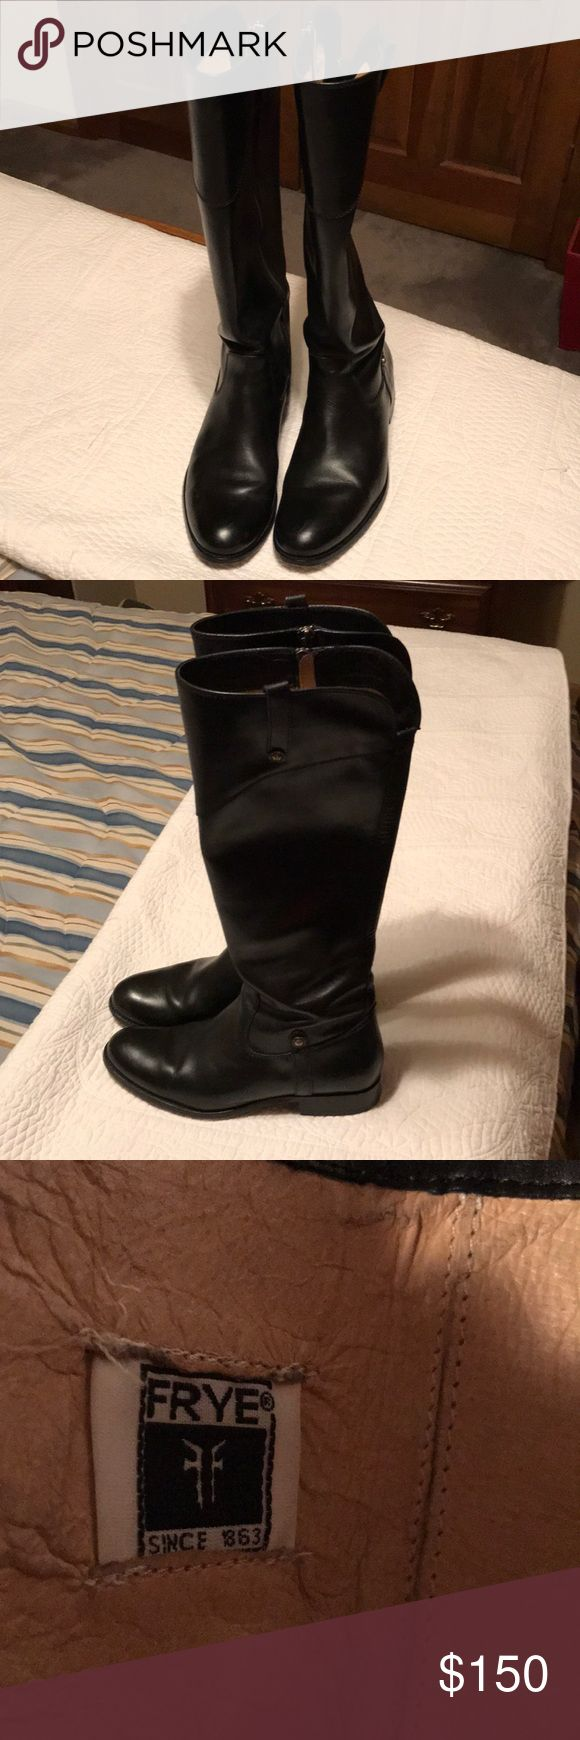 Frye black boots 9 1/2 for skinny calves used Bought new only wore a couple of times look like brand new for skinny calves Frye Shoes Heeled Boots